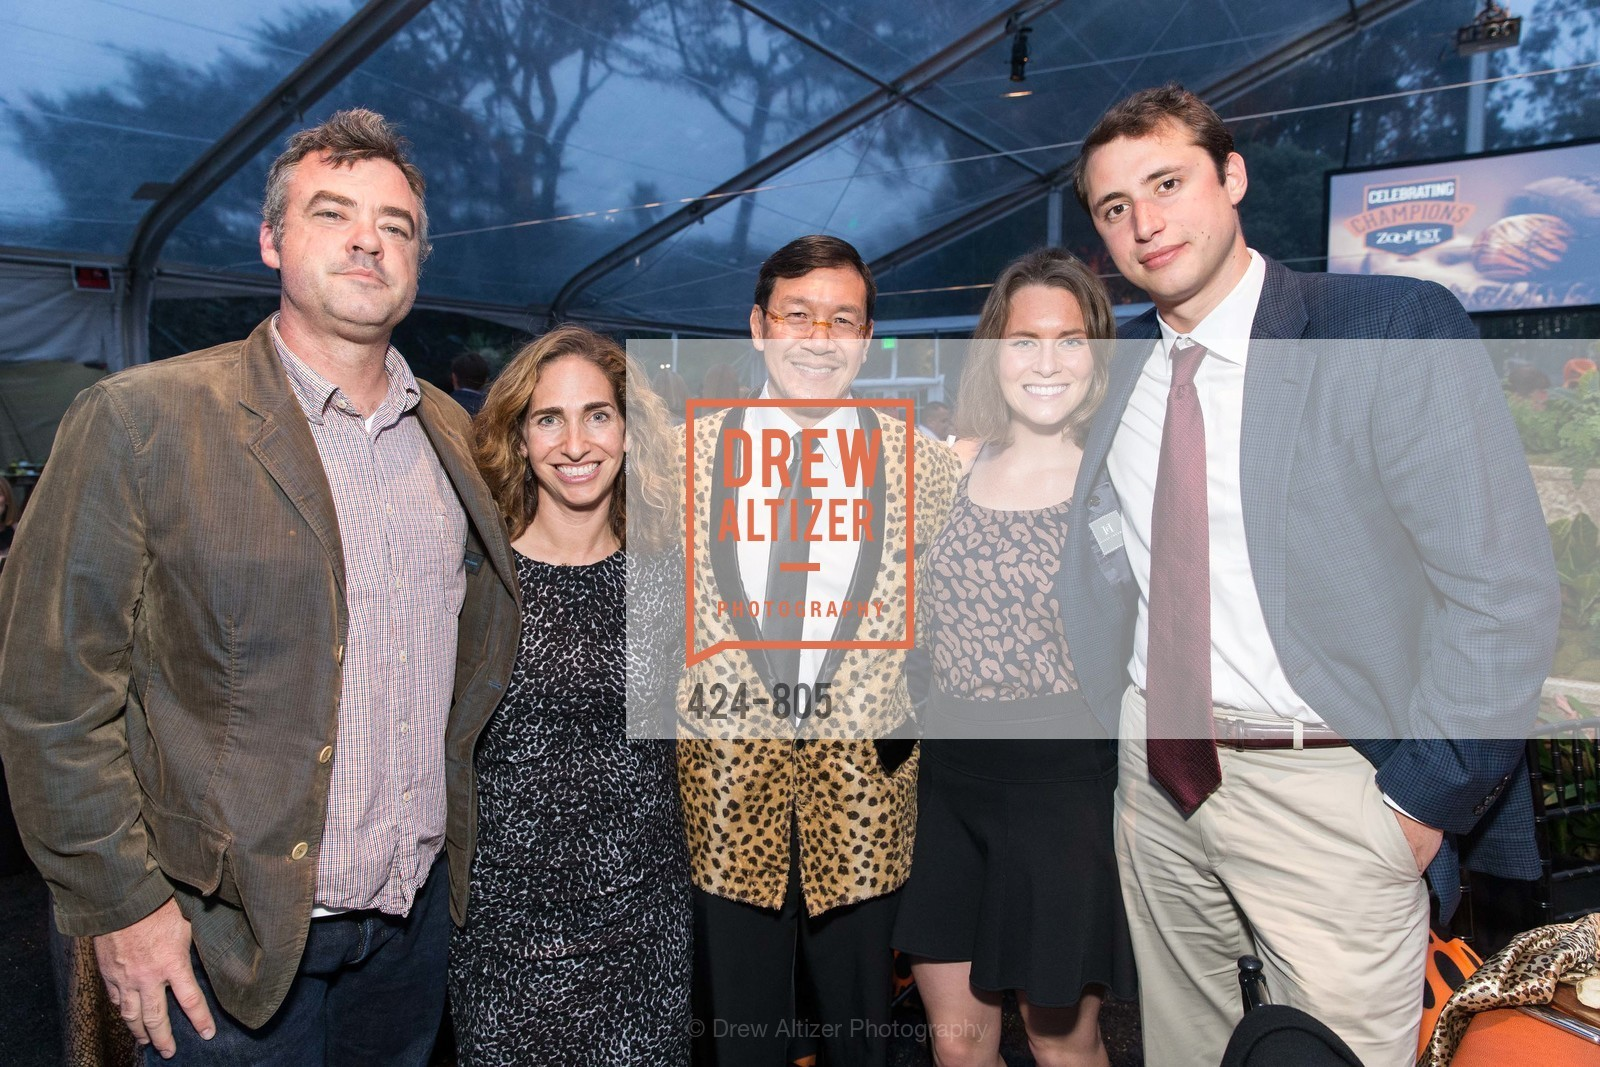 John Oram, Stacey Rubin, Timothy Wu, Brittany Powell, Sam Cartmell, ZOOFEST 2015, US, April 25th, 2015,Drew Altizer, Drew Altizer Photography, full-service agency, private events, San Francisco photographer, photographer california